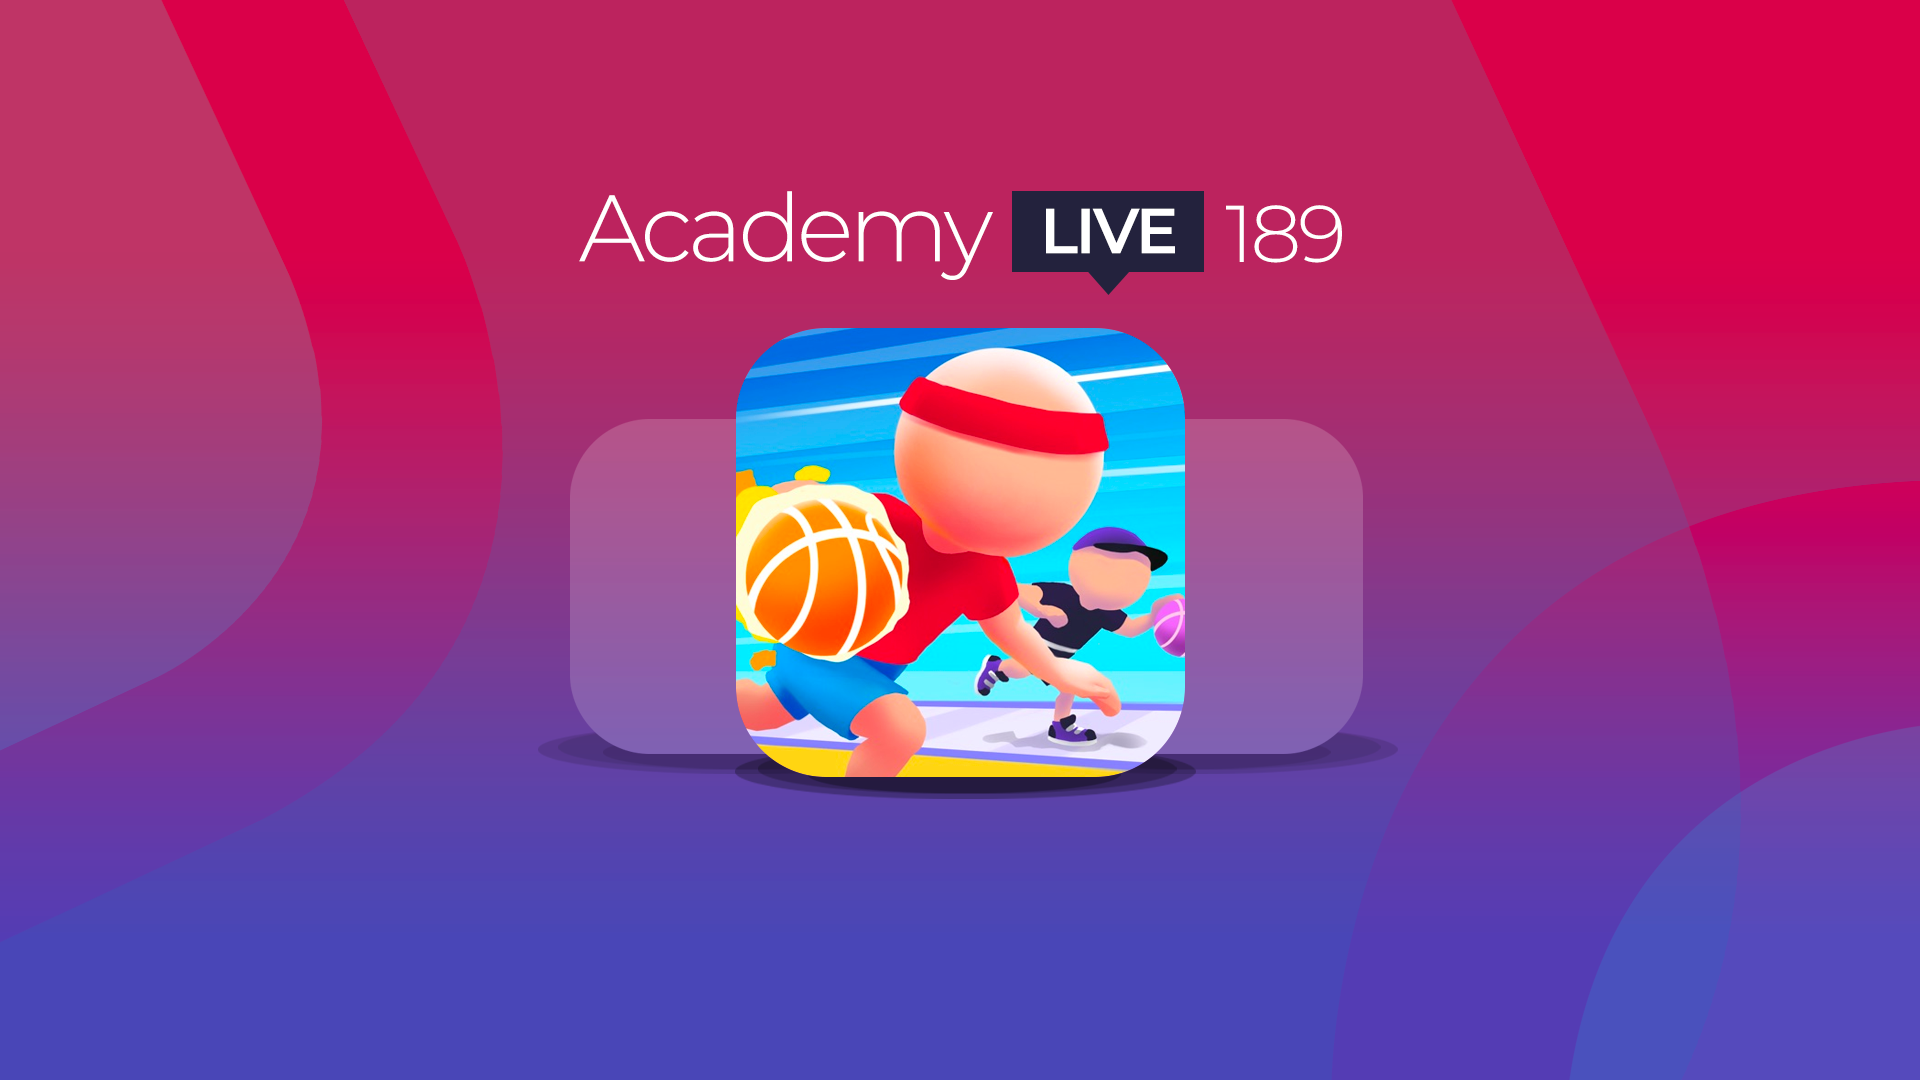 Academy Live 189: Timeshift Race, Just Survive, HoopMasters